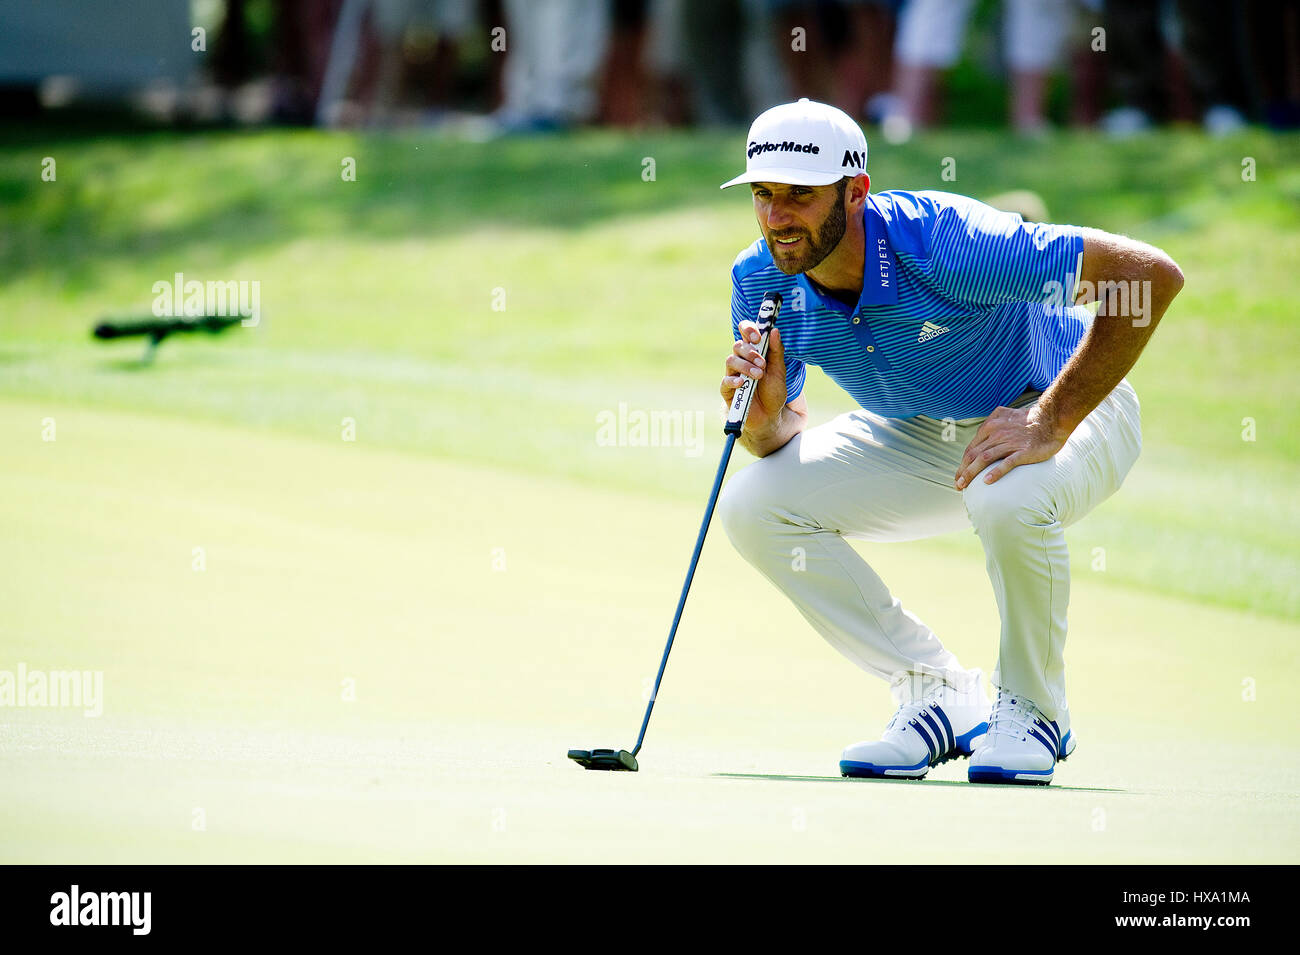 Austin, Texas, USA. 26. März 2017. Dustin Johnson in Aktion bei der World Golf Championships Dell Technologien Championship Stockfoto